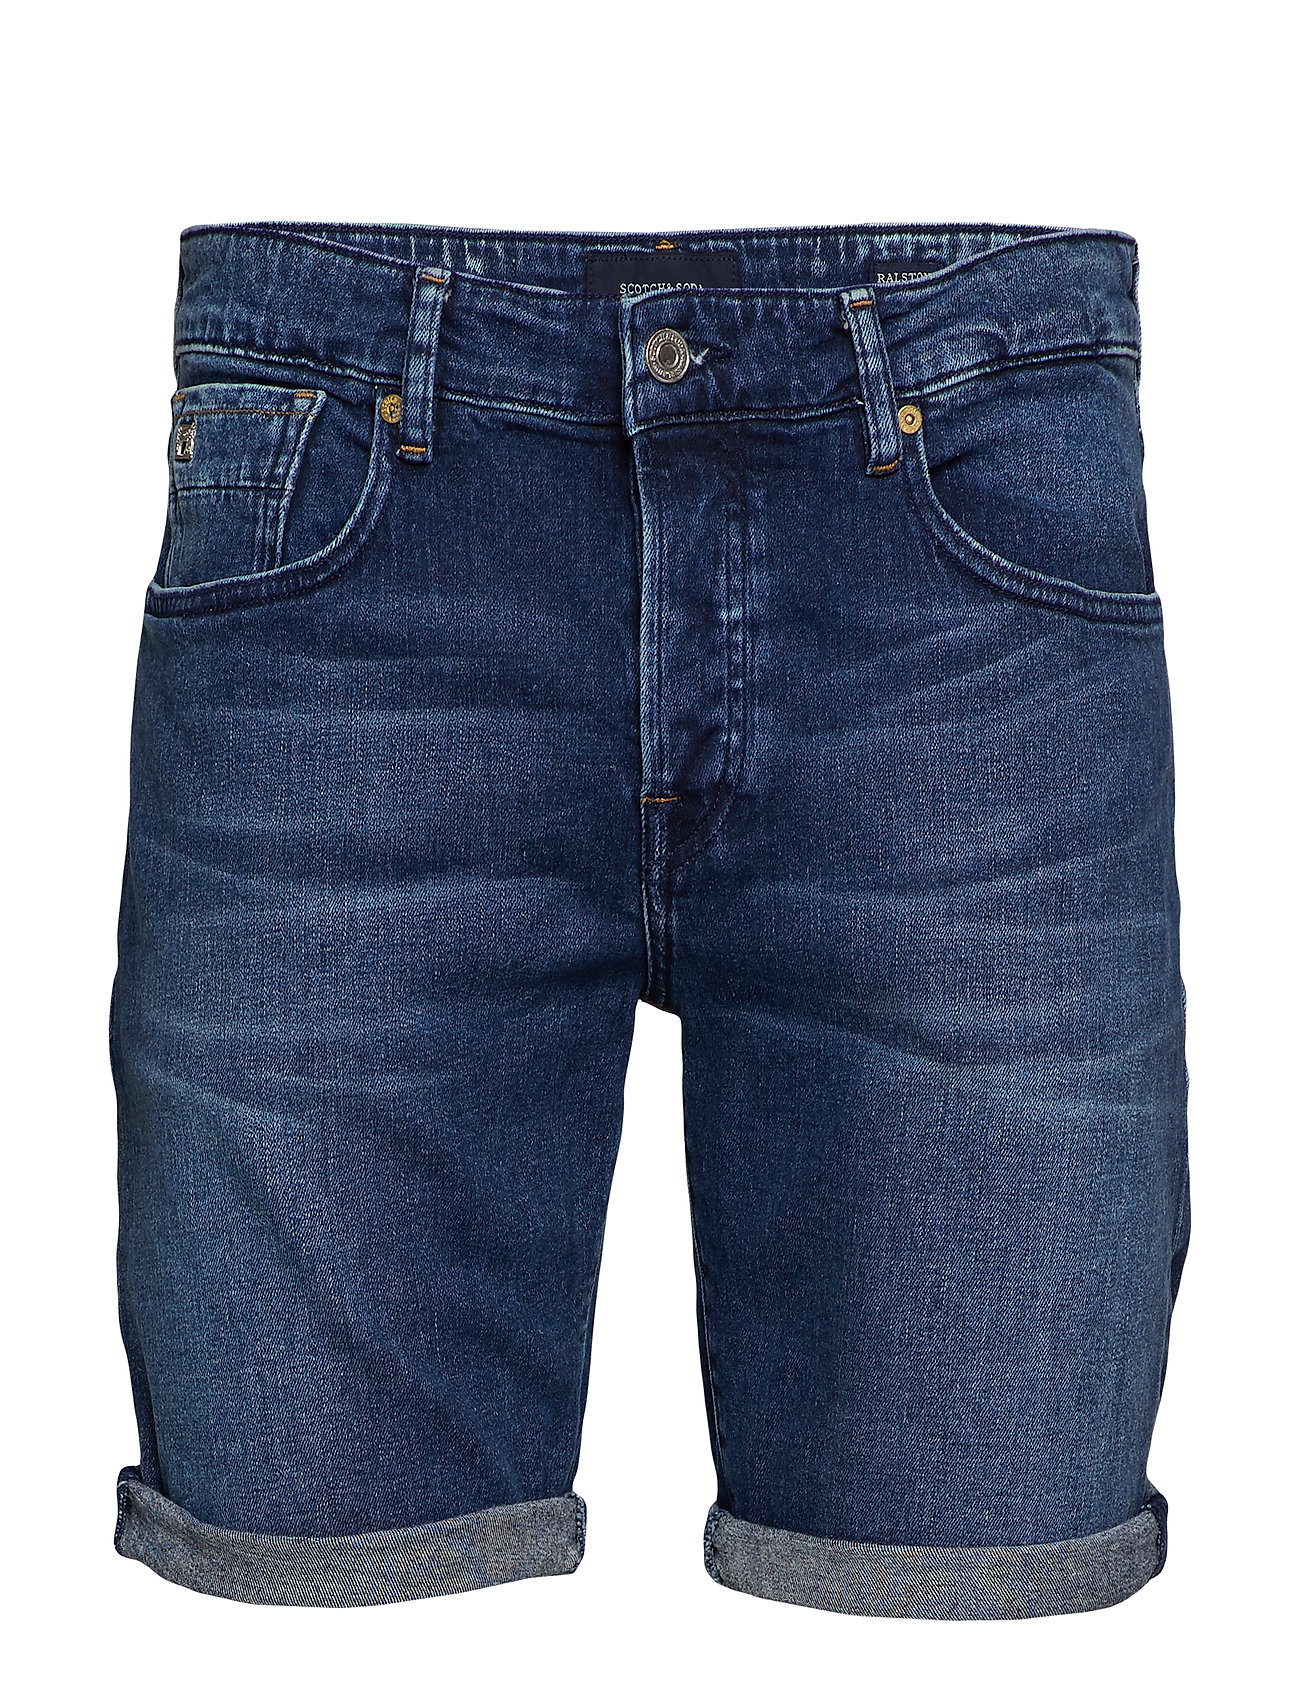 Scotch & Soda Ralston Short - Get Knotted - GET KNOTTED